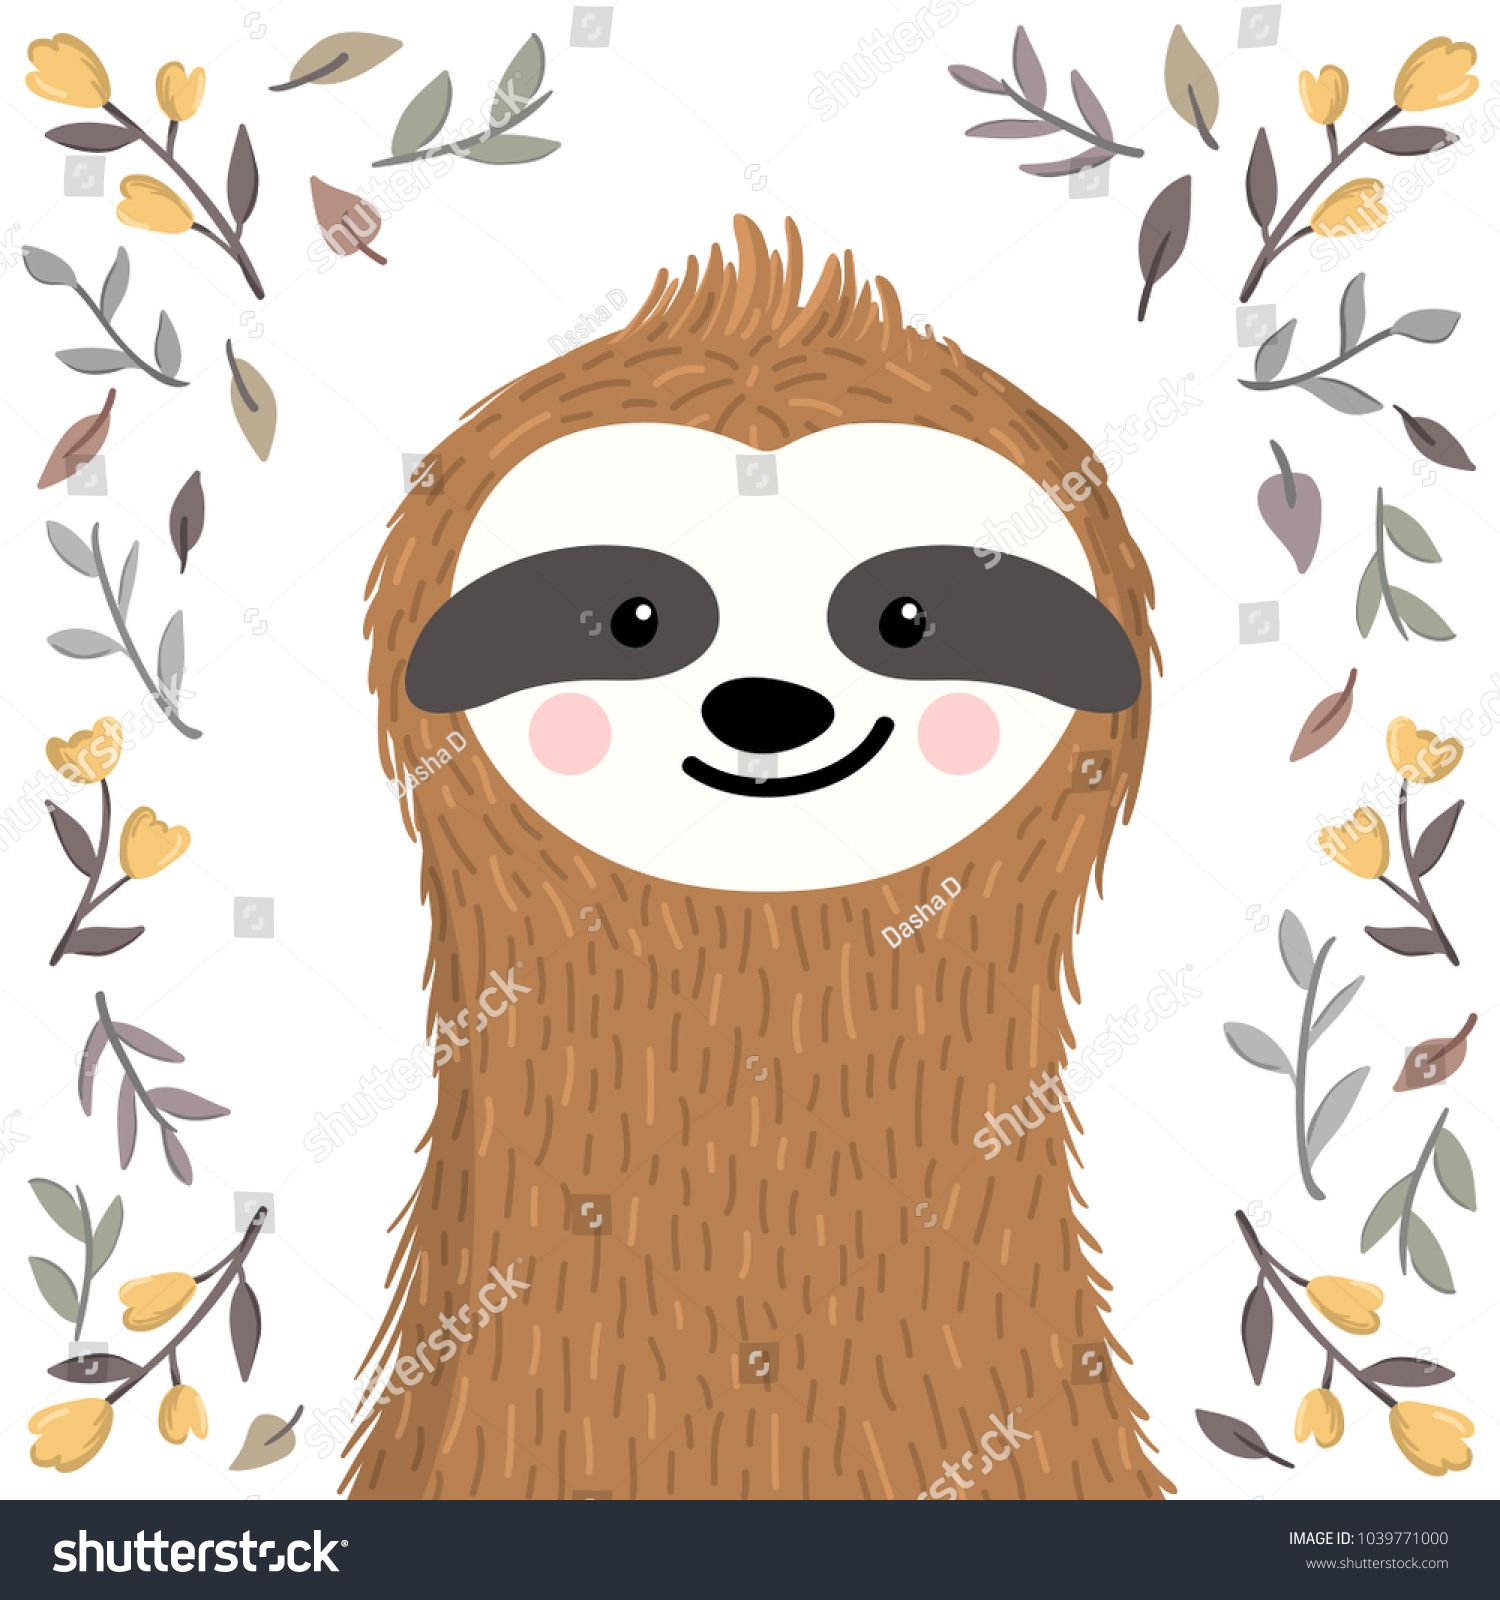 Cute baby sloth among flowers and leaves. Adorable animal